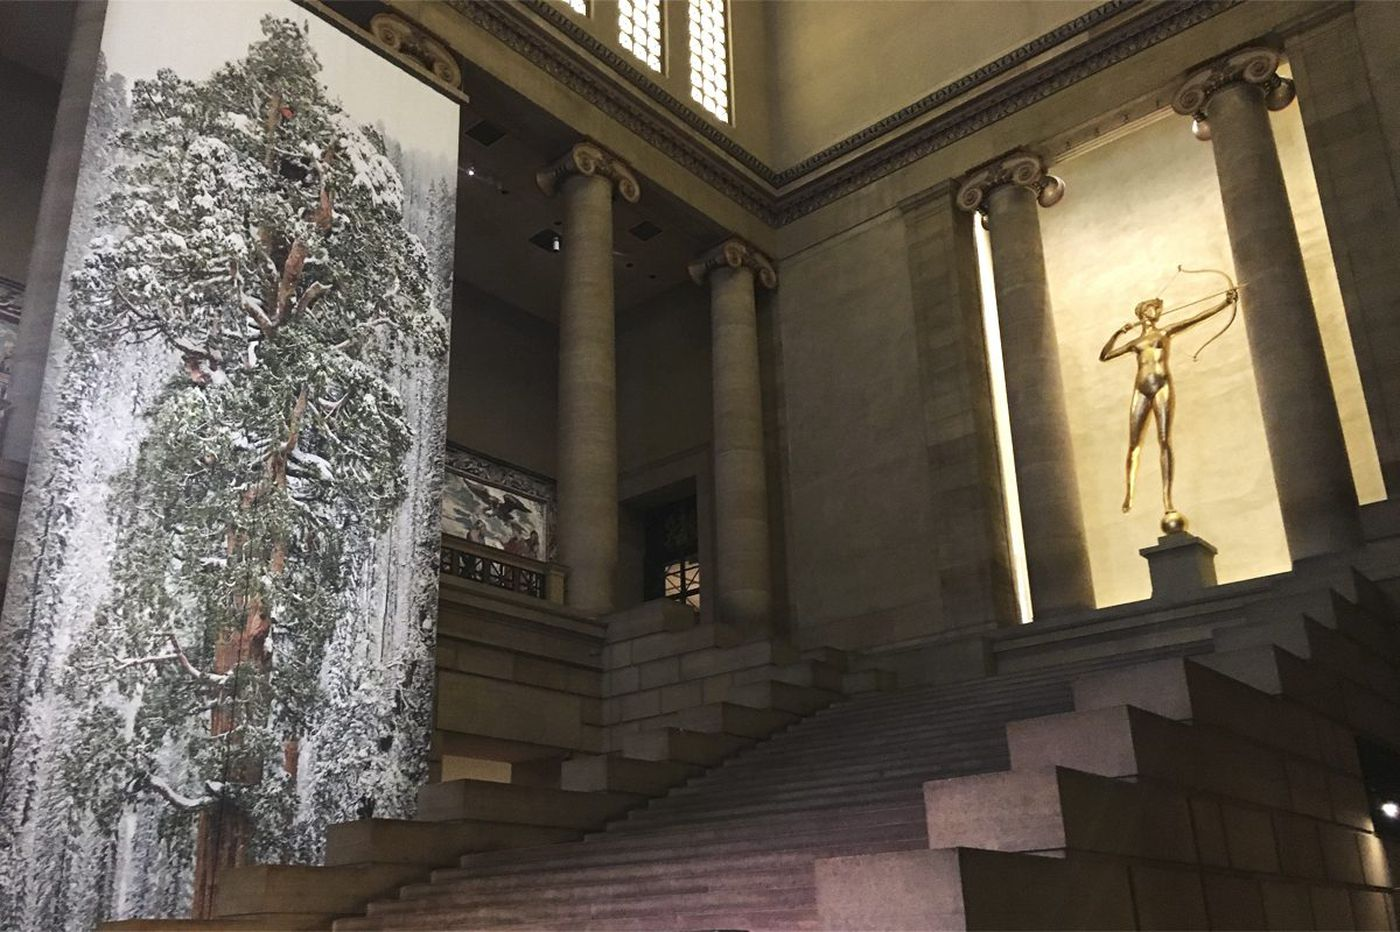 Philadelphia Museum of Art hangs massive tree banners to mark new wildlife photography exhibit